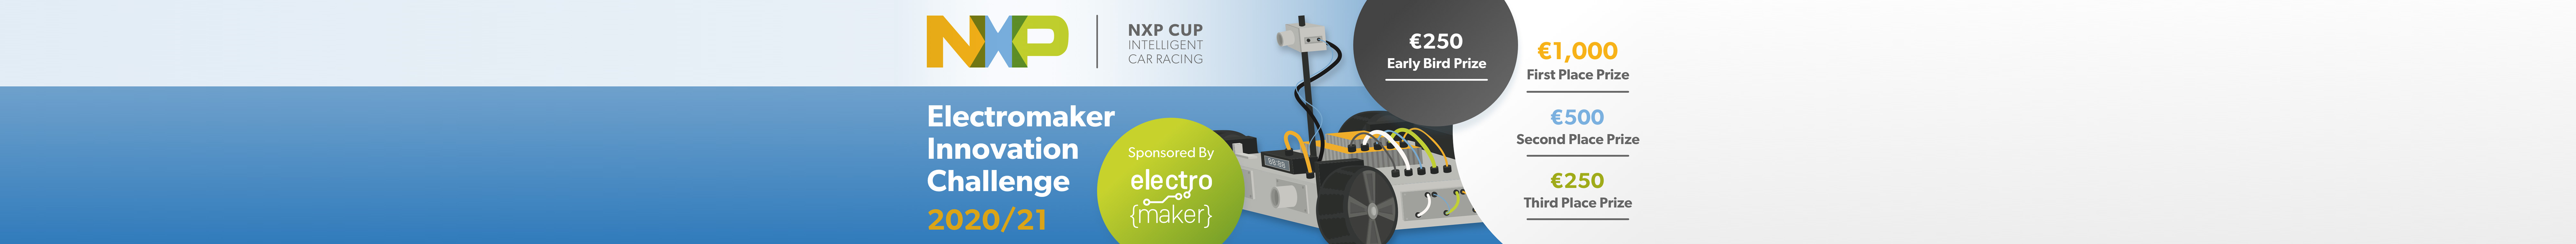 NXP Cup Electromaker Innovation Challenge 2021